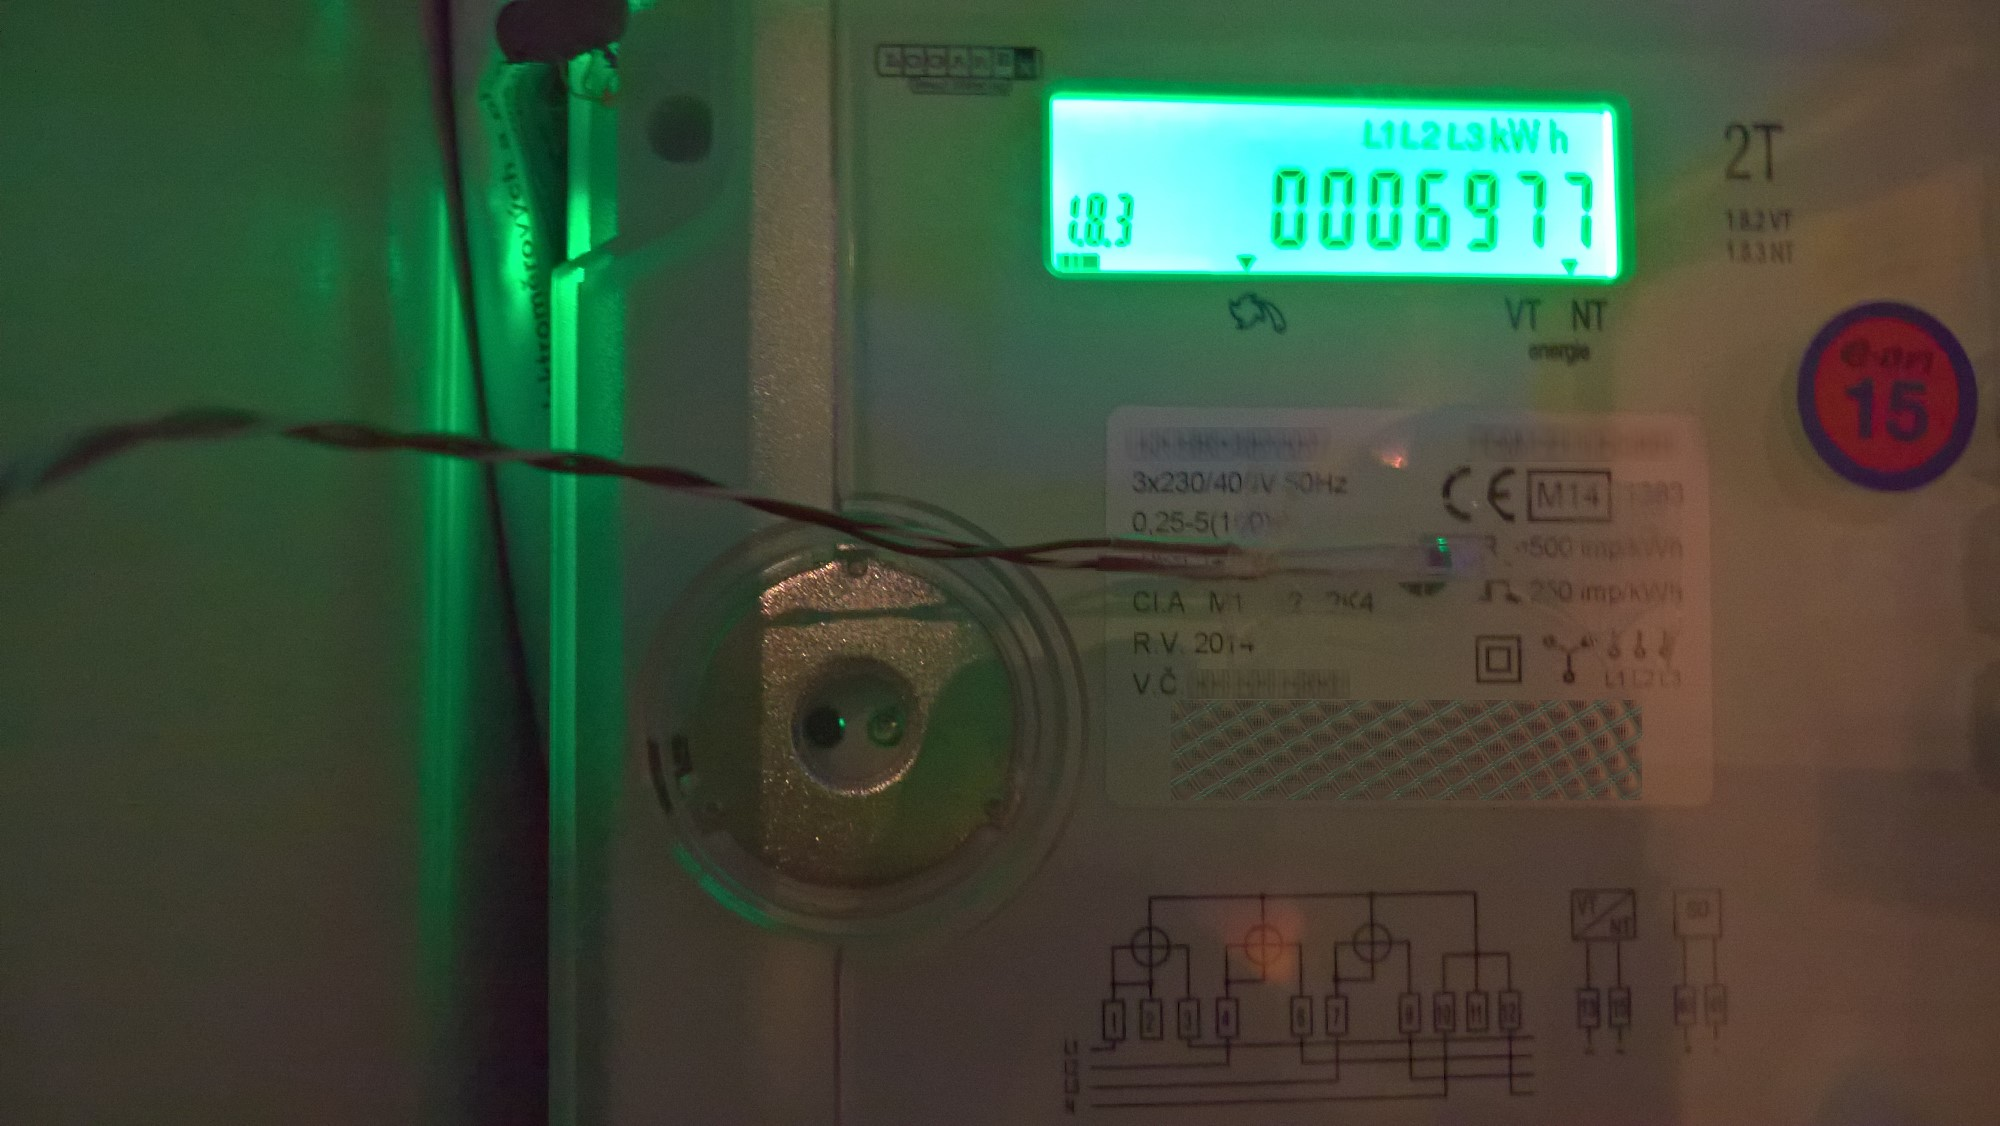 Increasing Electricity Meter : Connecting your electricity meter to loxone smarthome exposed